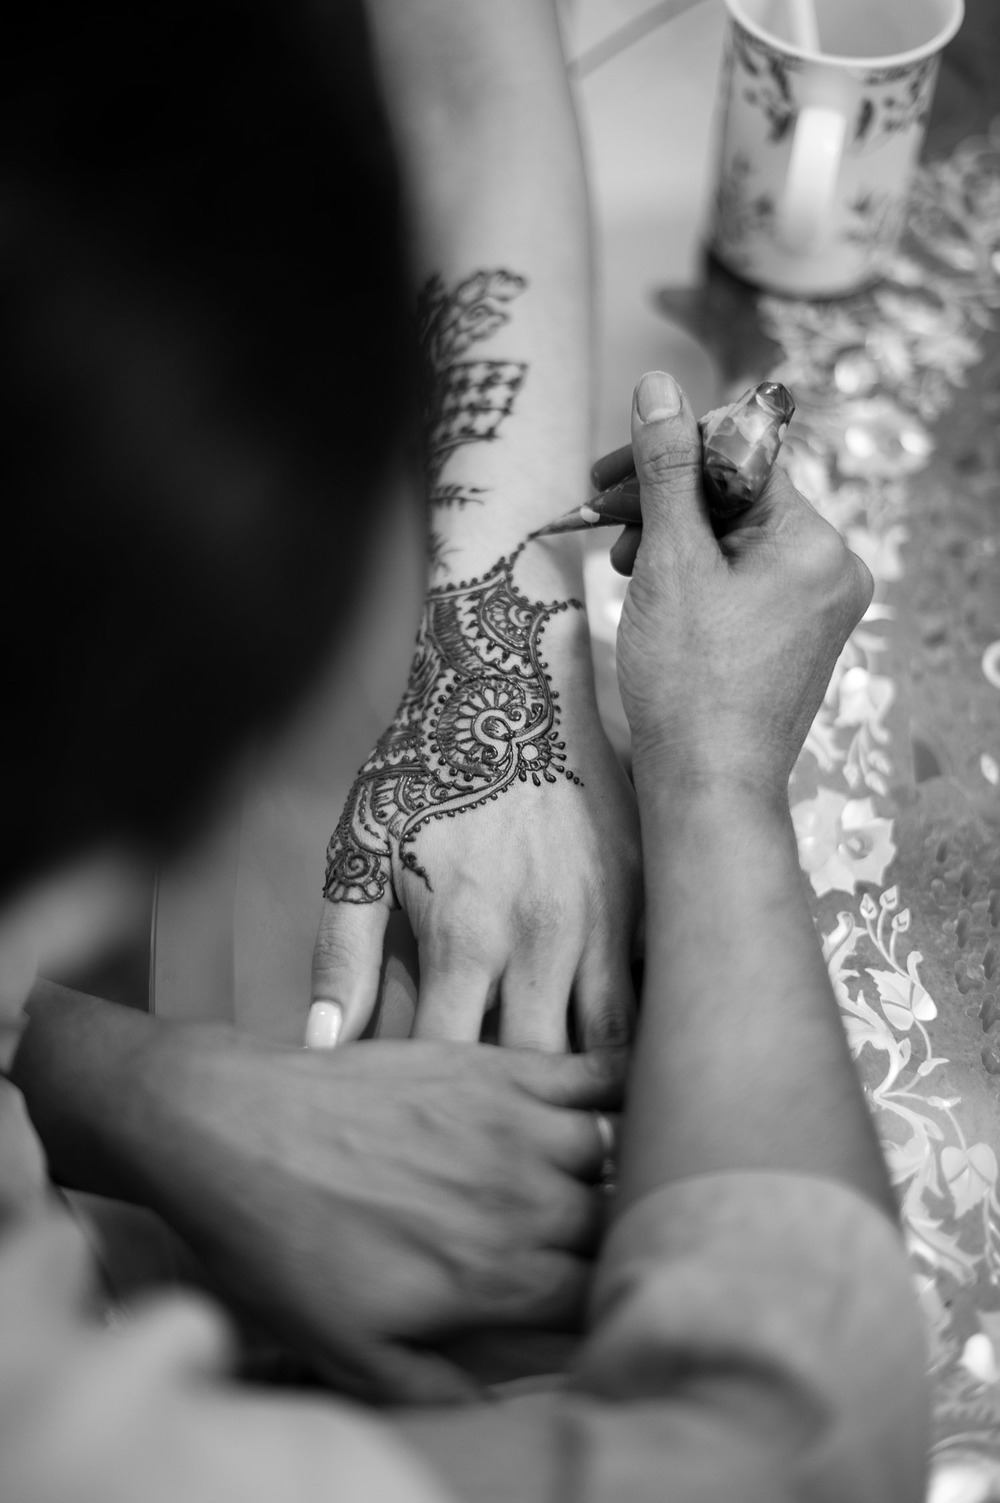 Top indian wedding photographer, Lexia frank, photographs this destination indian wedding in palm coast florida at the hammock beach resort indian wedding during the bride's mehndi ceremony as her henna artist does a beautiful minimalist mehndi design on her hands while Destination wedding photographer Lexia Frank photographs this luxury indian wedding in florida on film as she is a film photographer for indian weddings